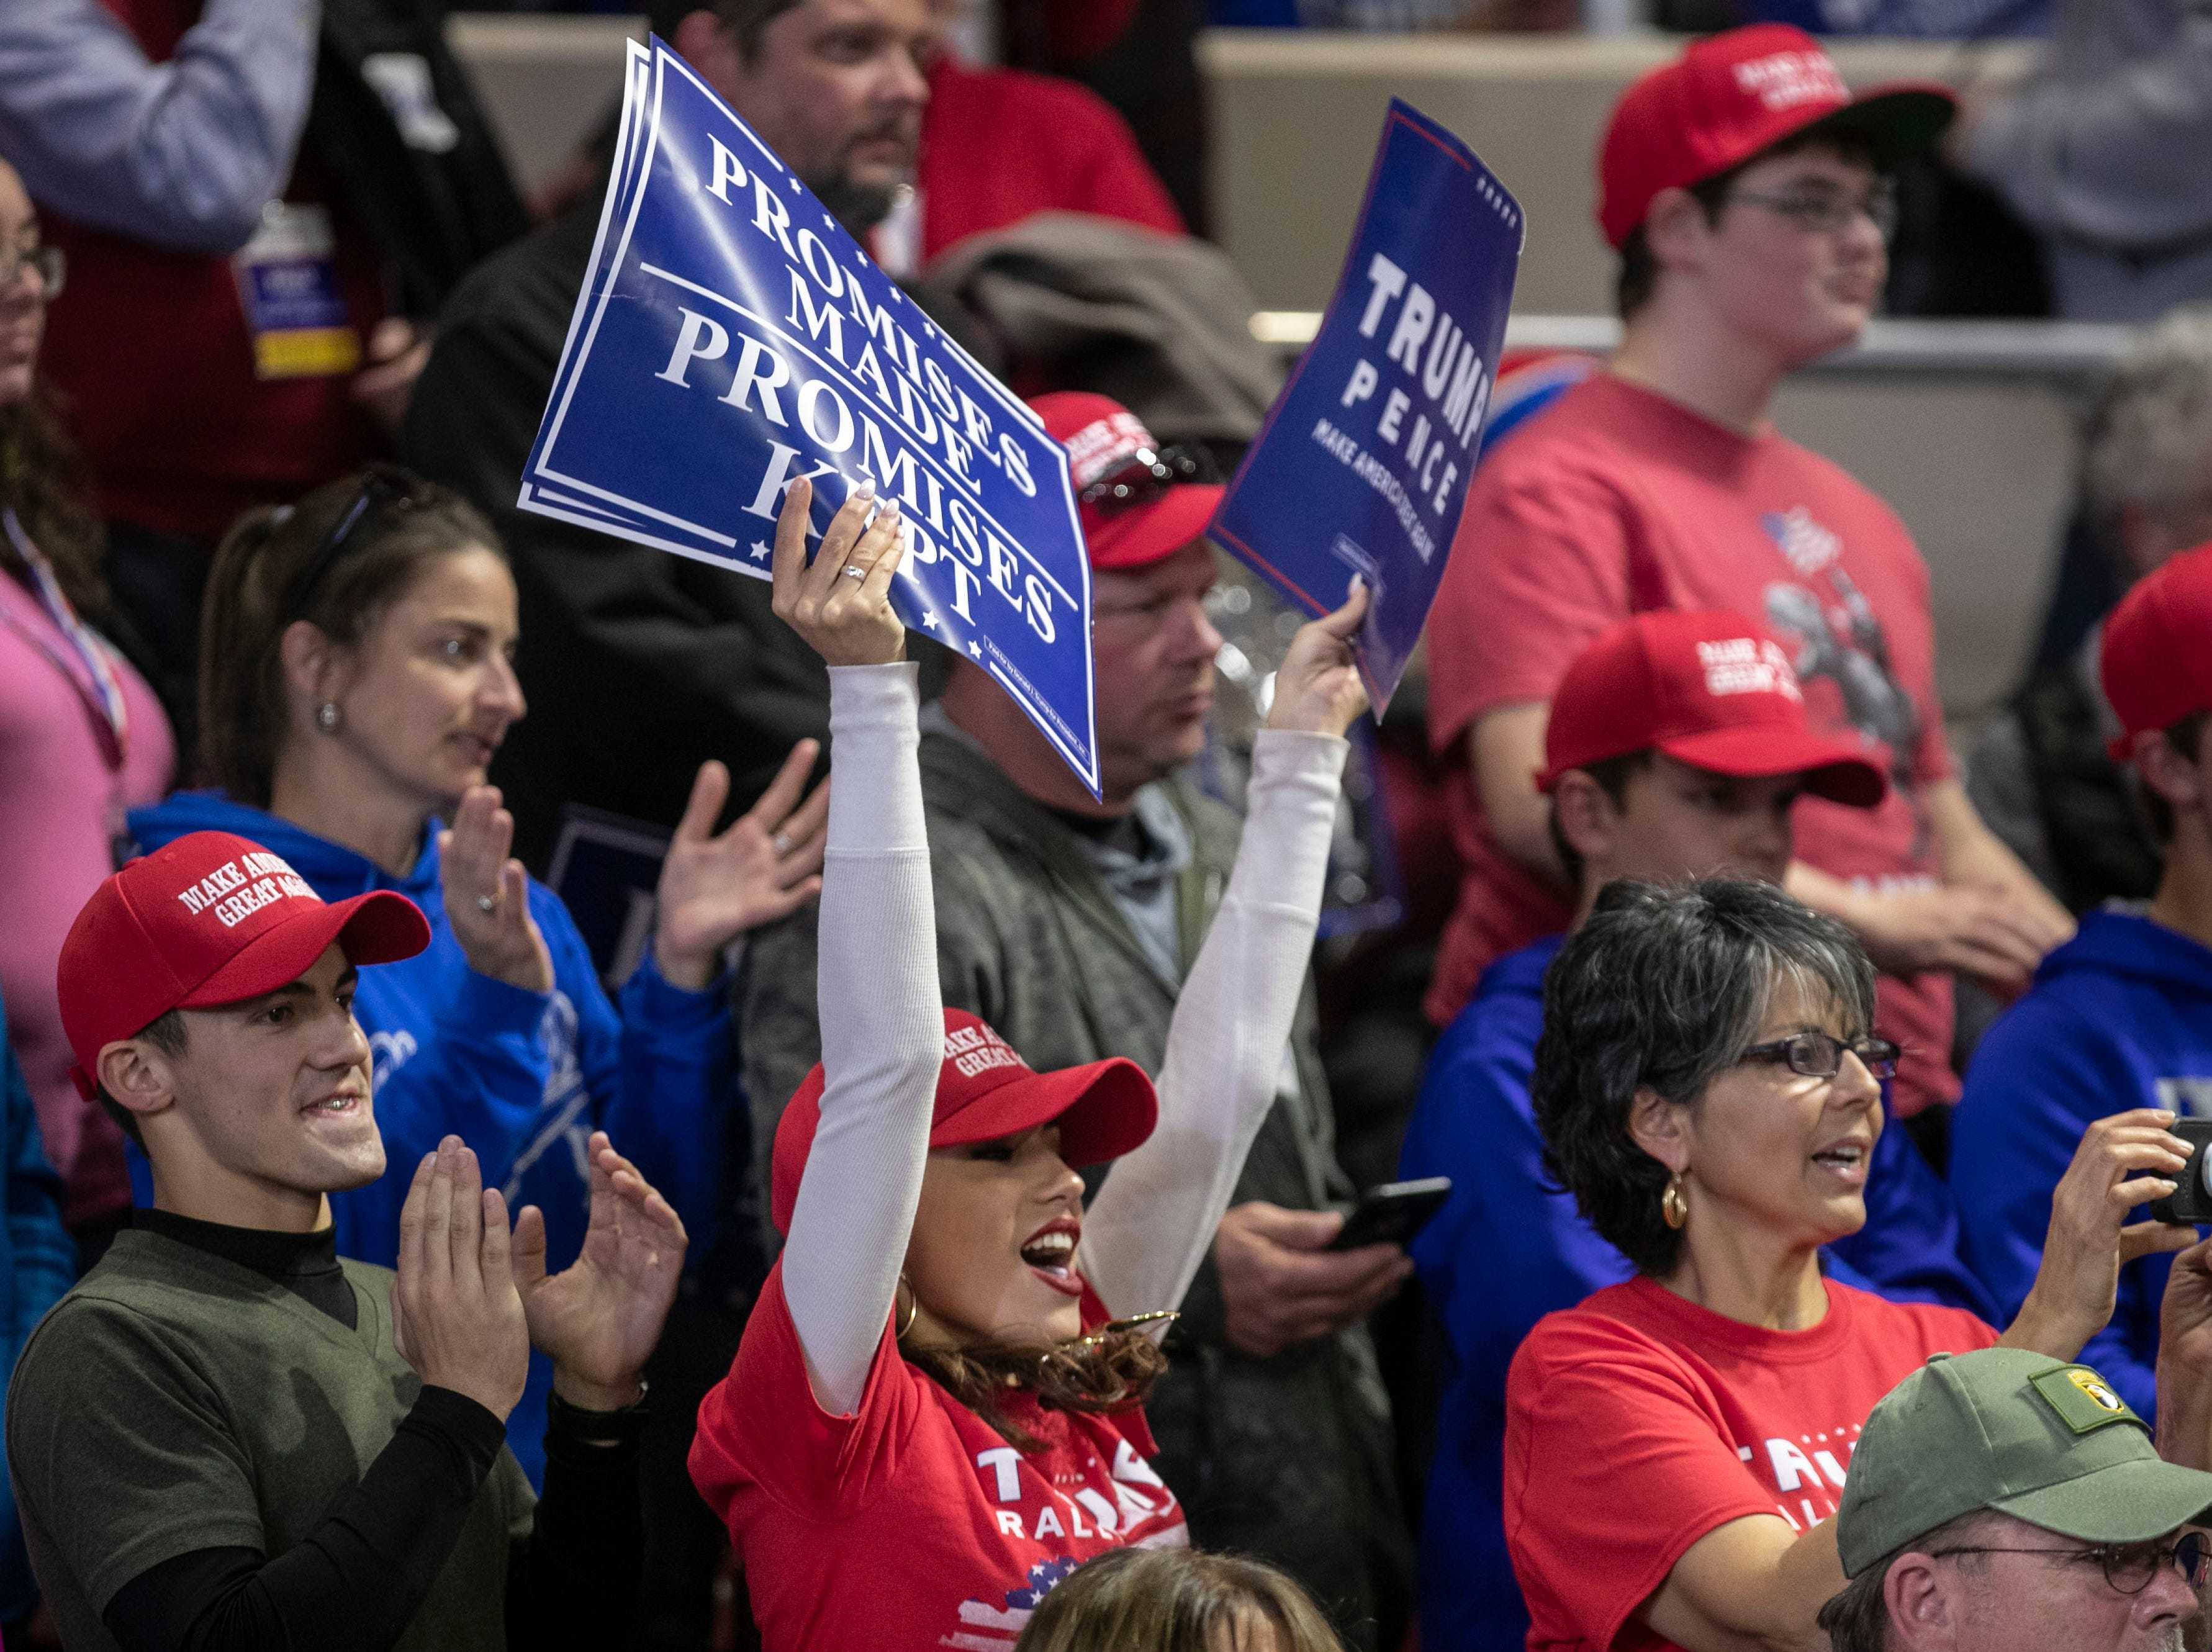 Most of the  crowd stood on their feet as President Donald Trump gave a speech during on the Eastern Kentucky University campus Saturday night.